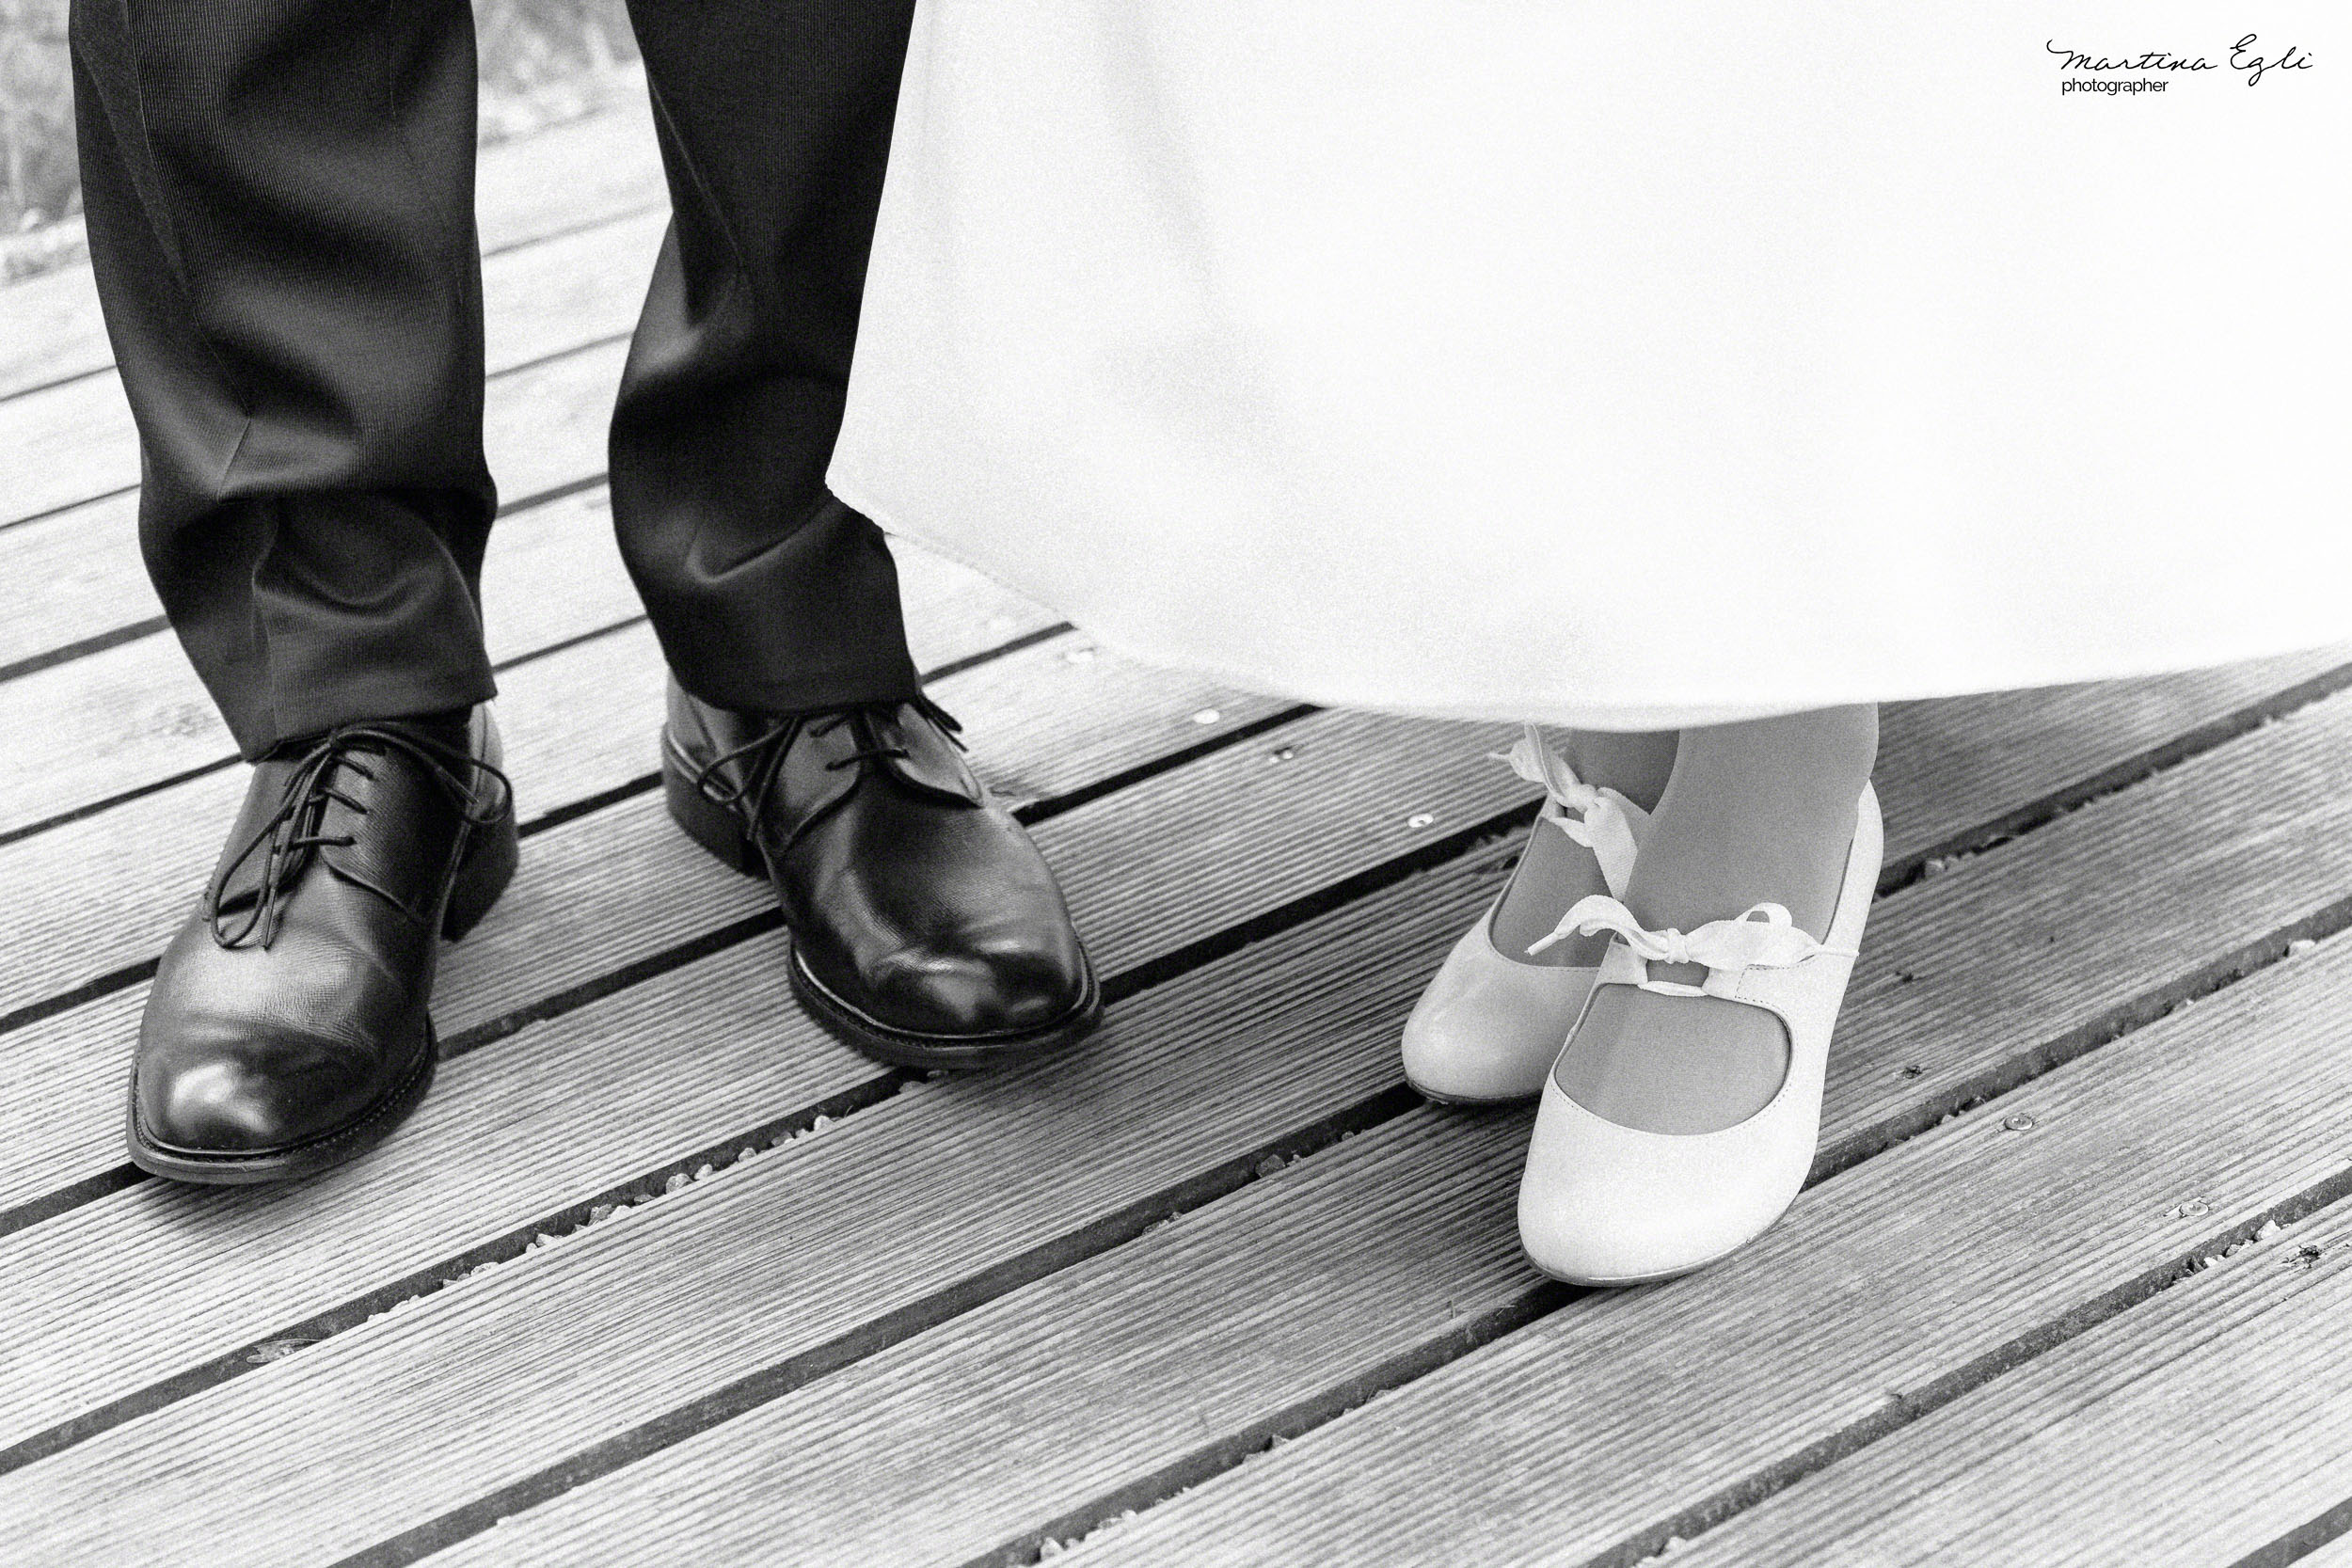 A Bride and Groom's Shoes